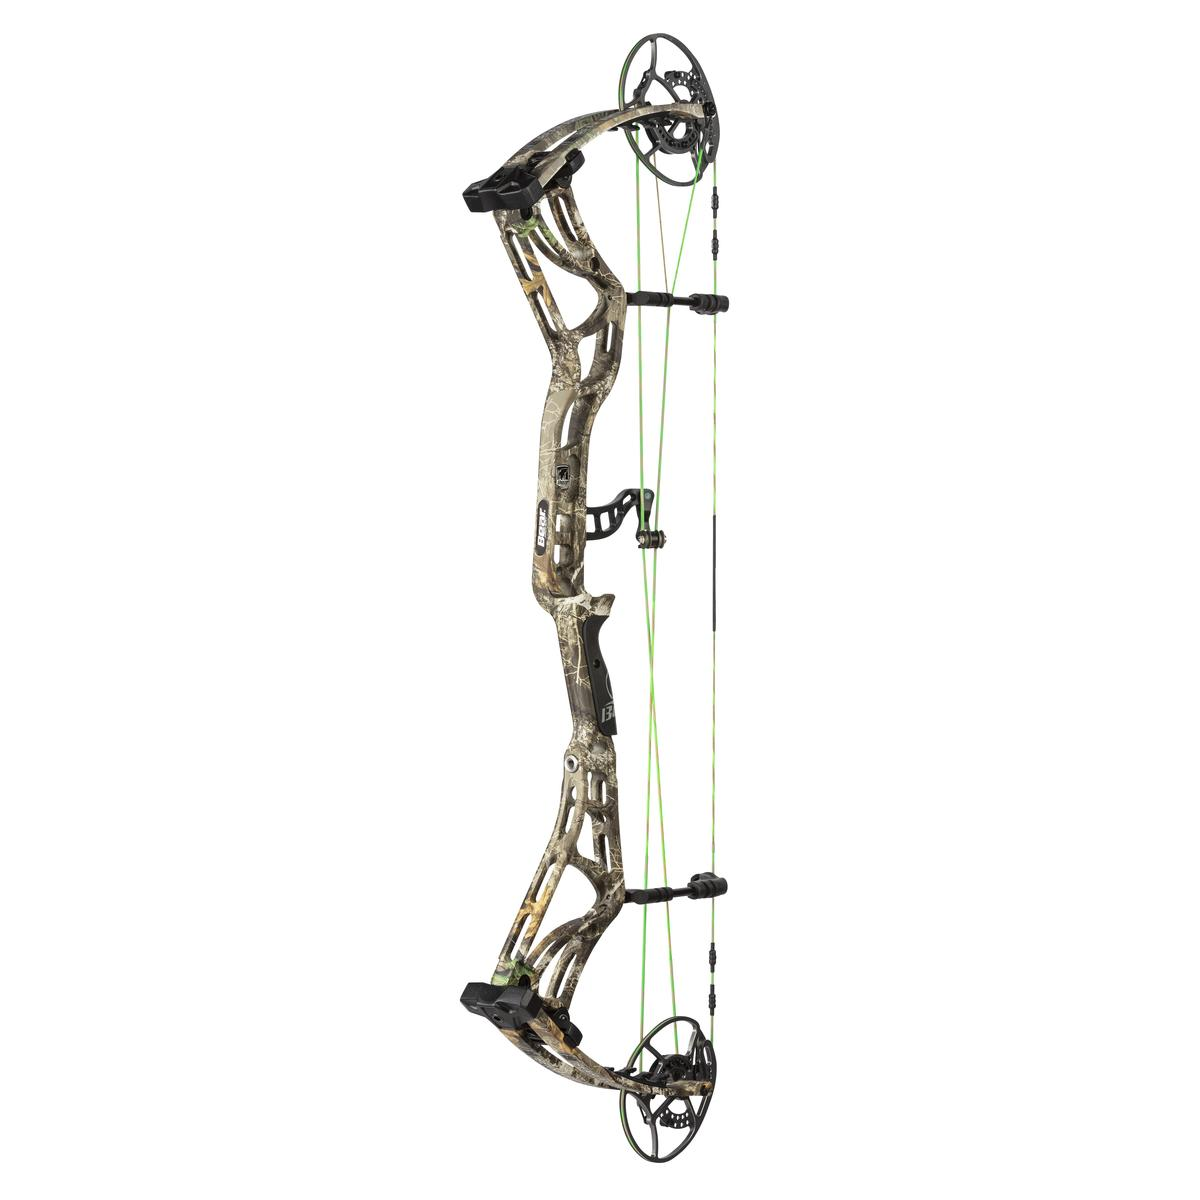 Bear Kuma Compound Bow in Realtree EDGE